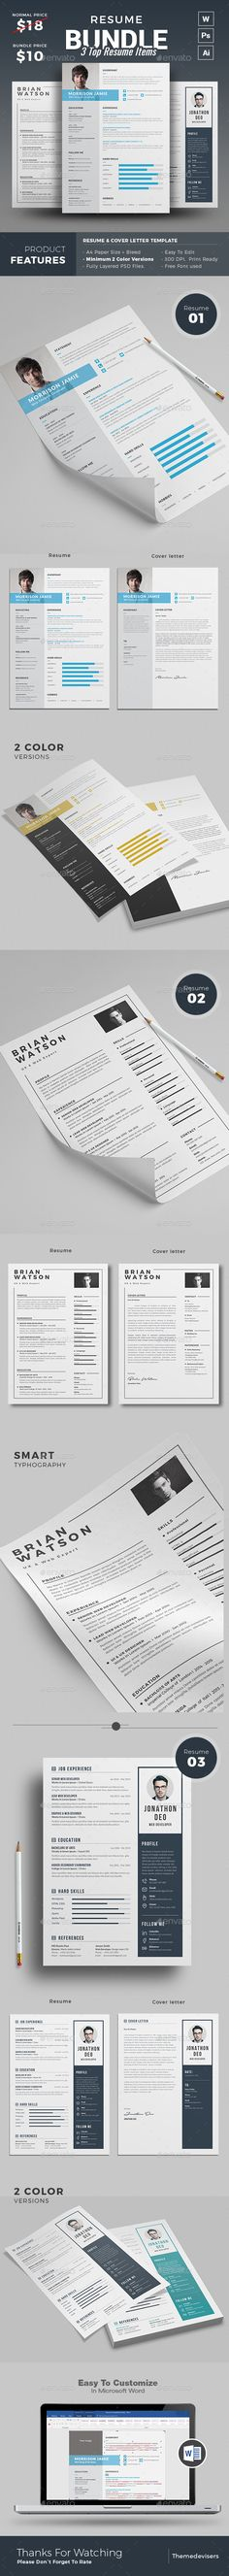 Resume Photoshop illustrator - illustrator resume